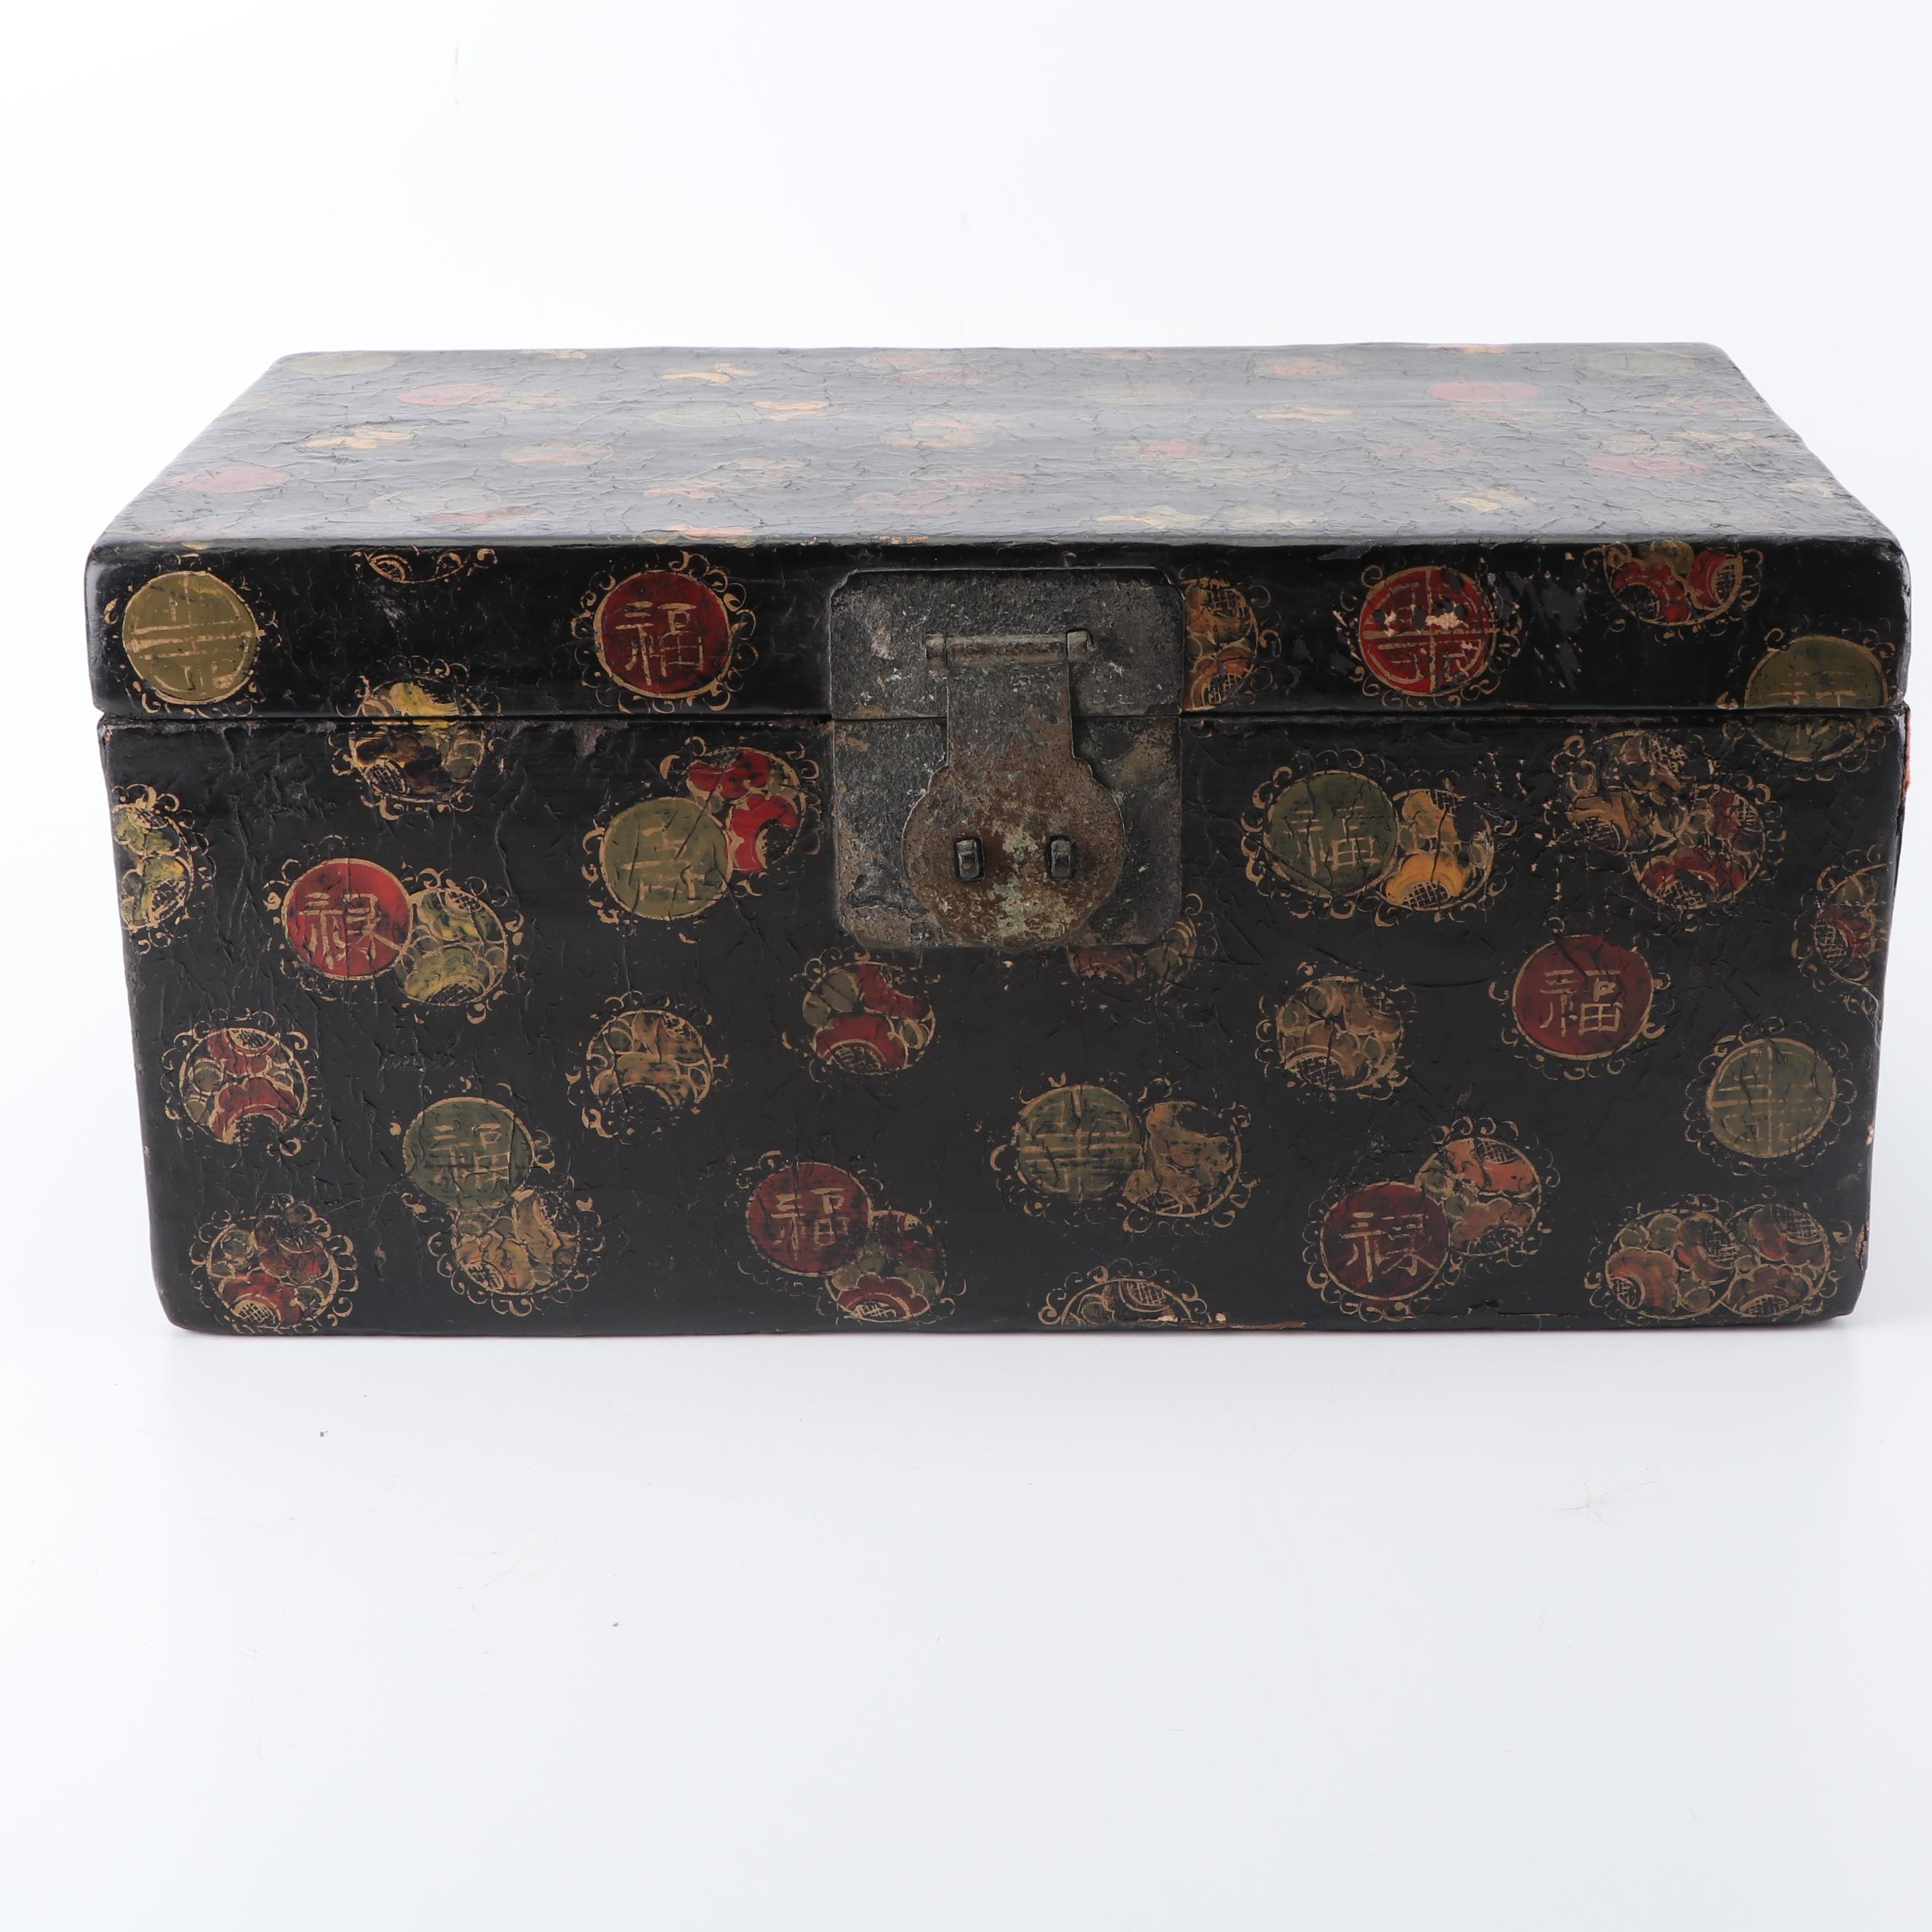 Chinese Hand-Painted Papier-mâché Box, 19th Century